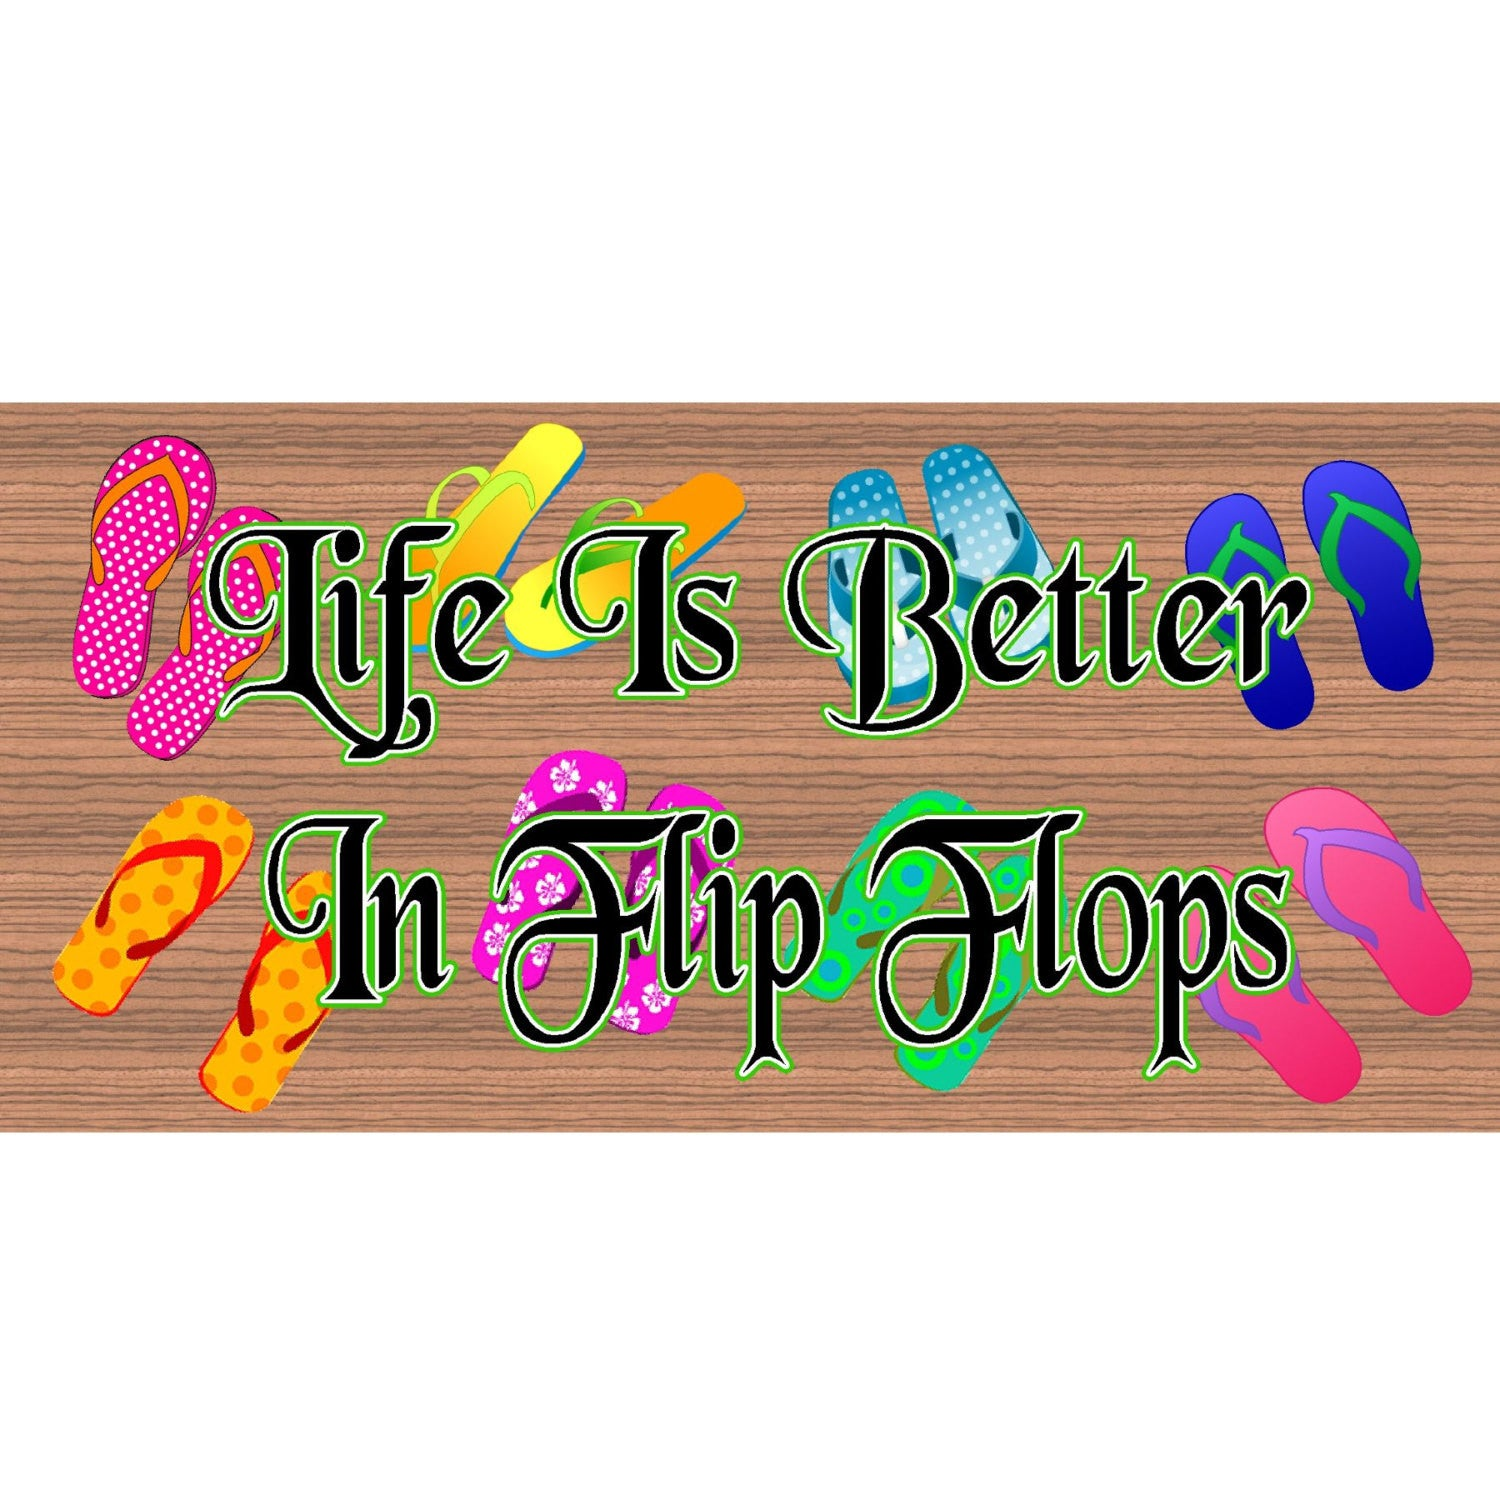 Flip Flop Wood Signs -Life Is Better In Flip Flops- GS 1754-Flip Flop Plaque